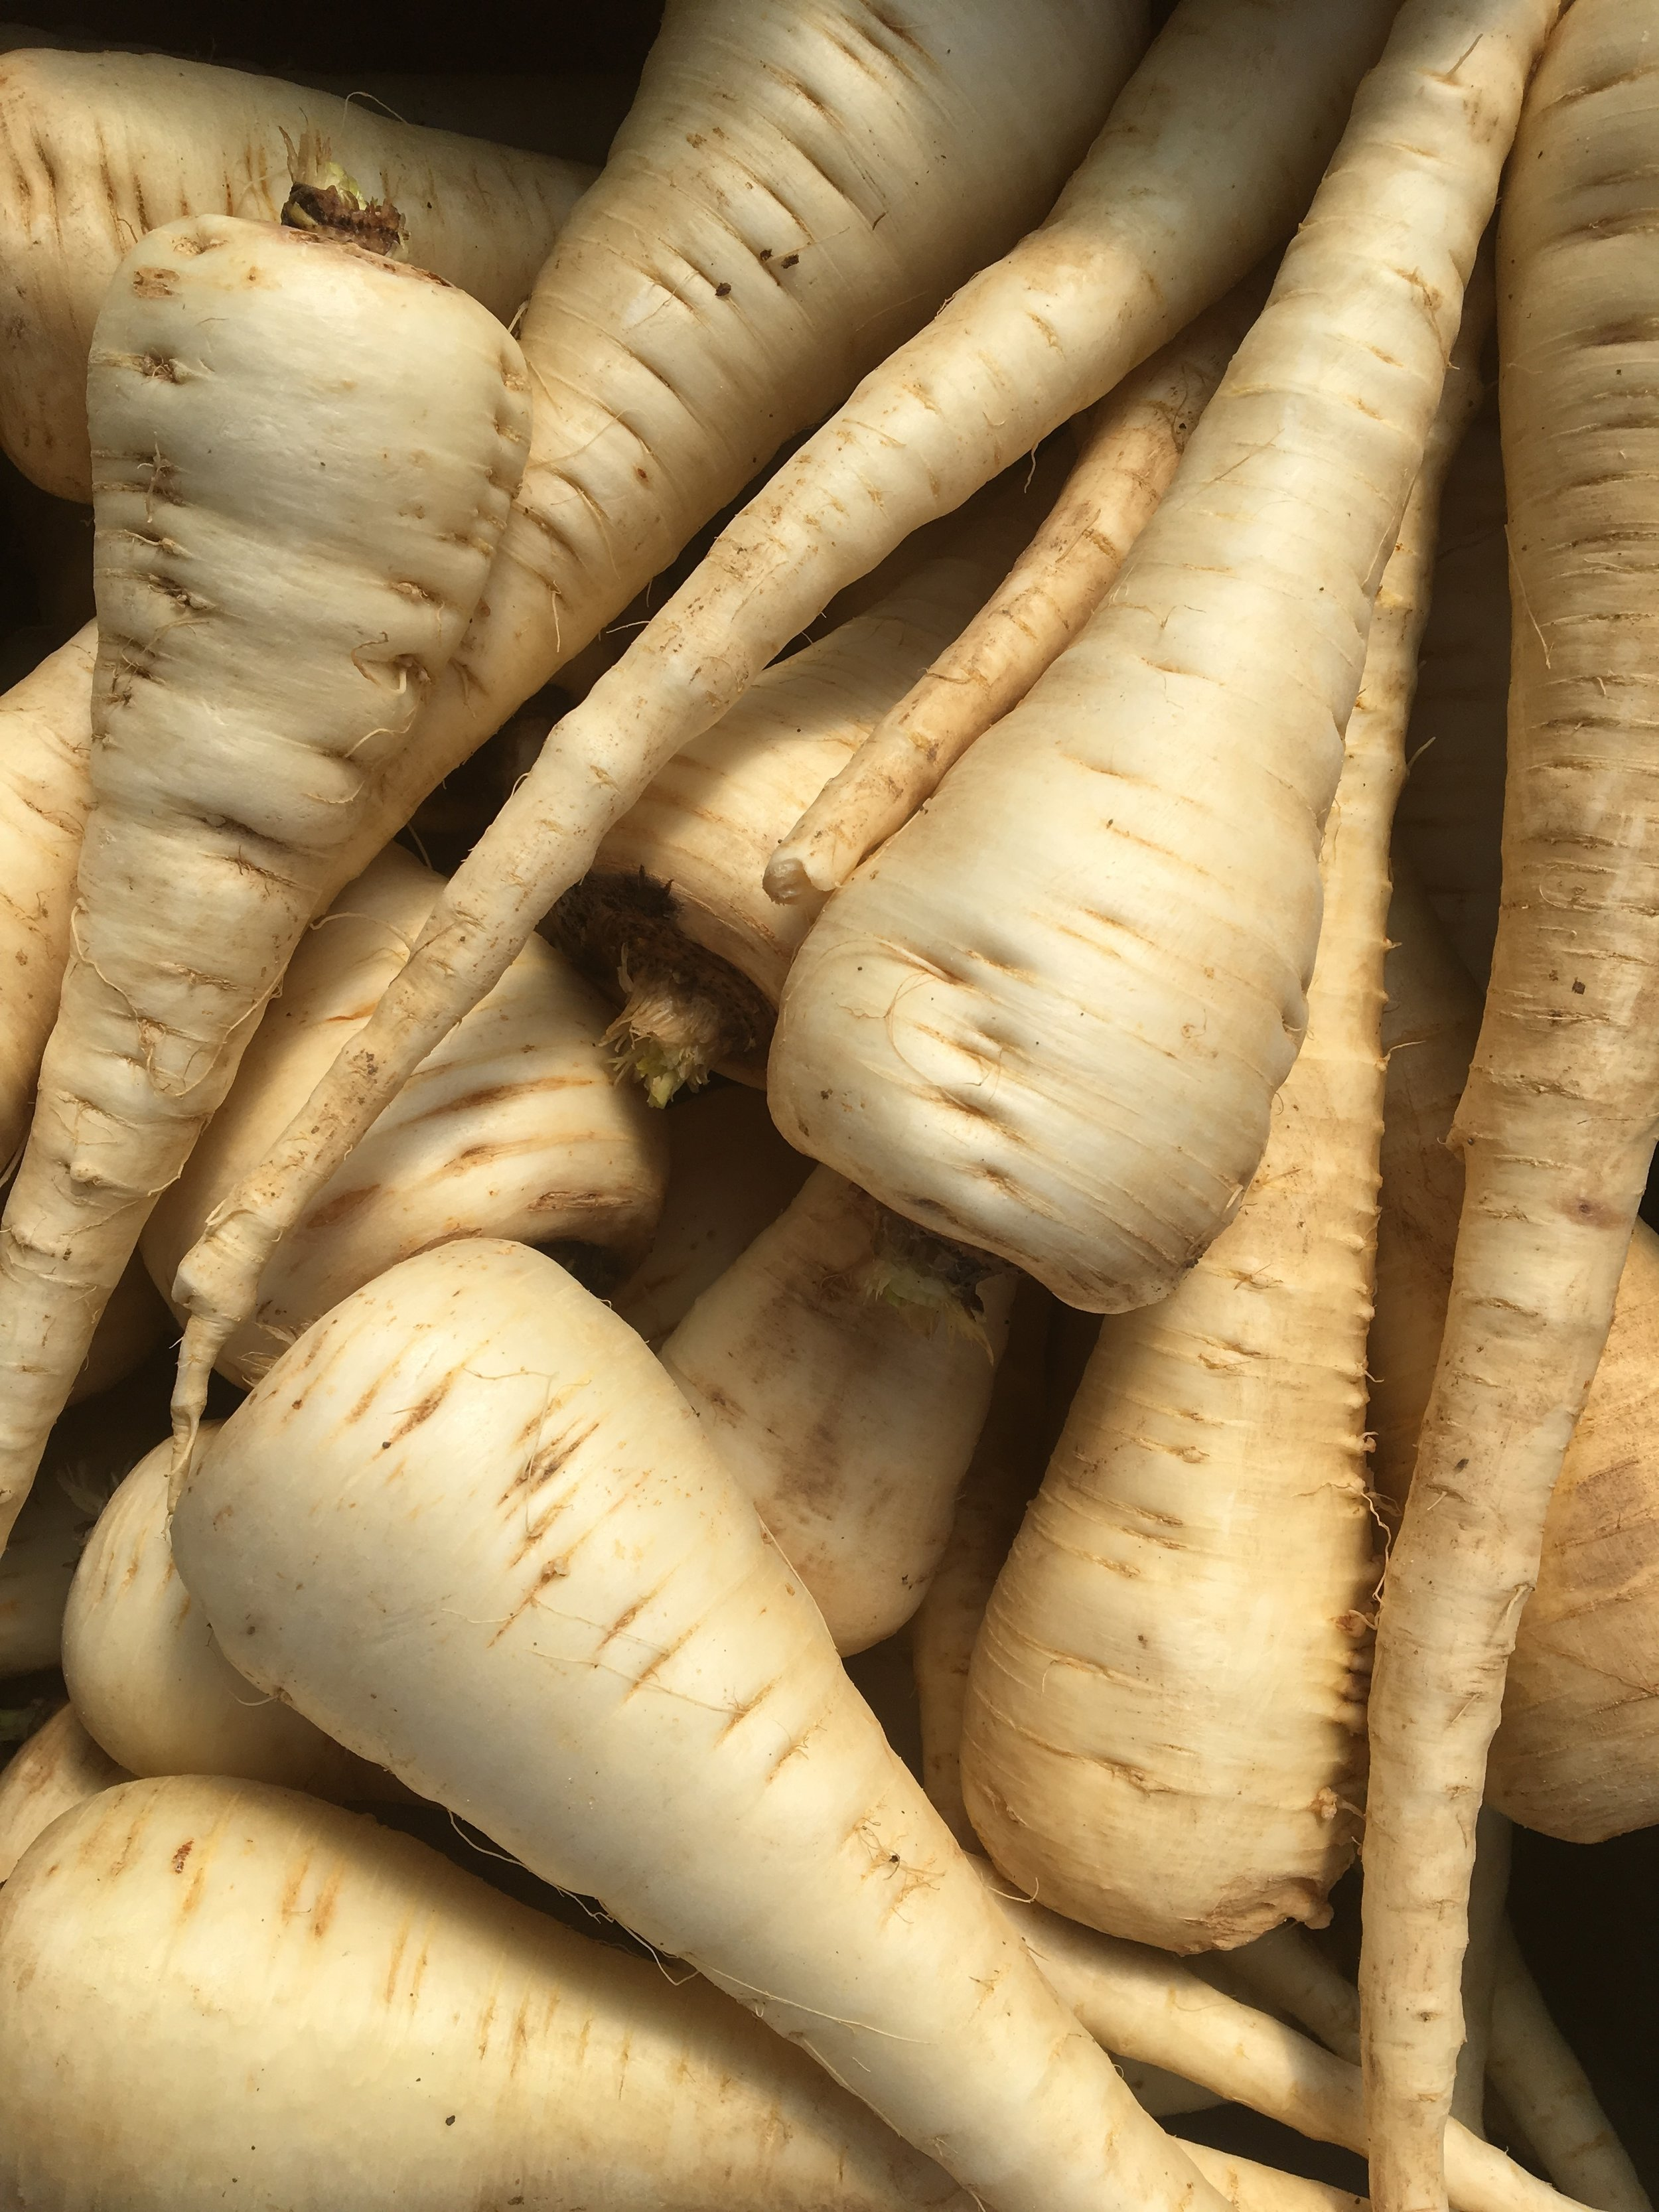 Spring-dug parsnips are candy sweet